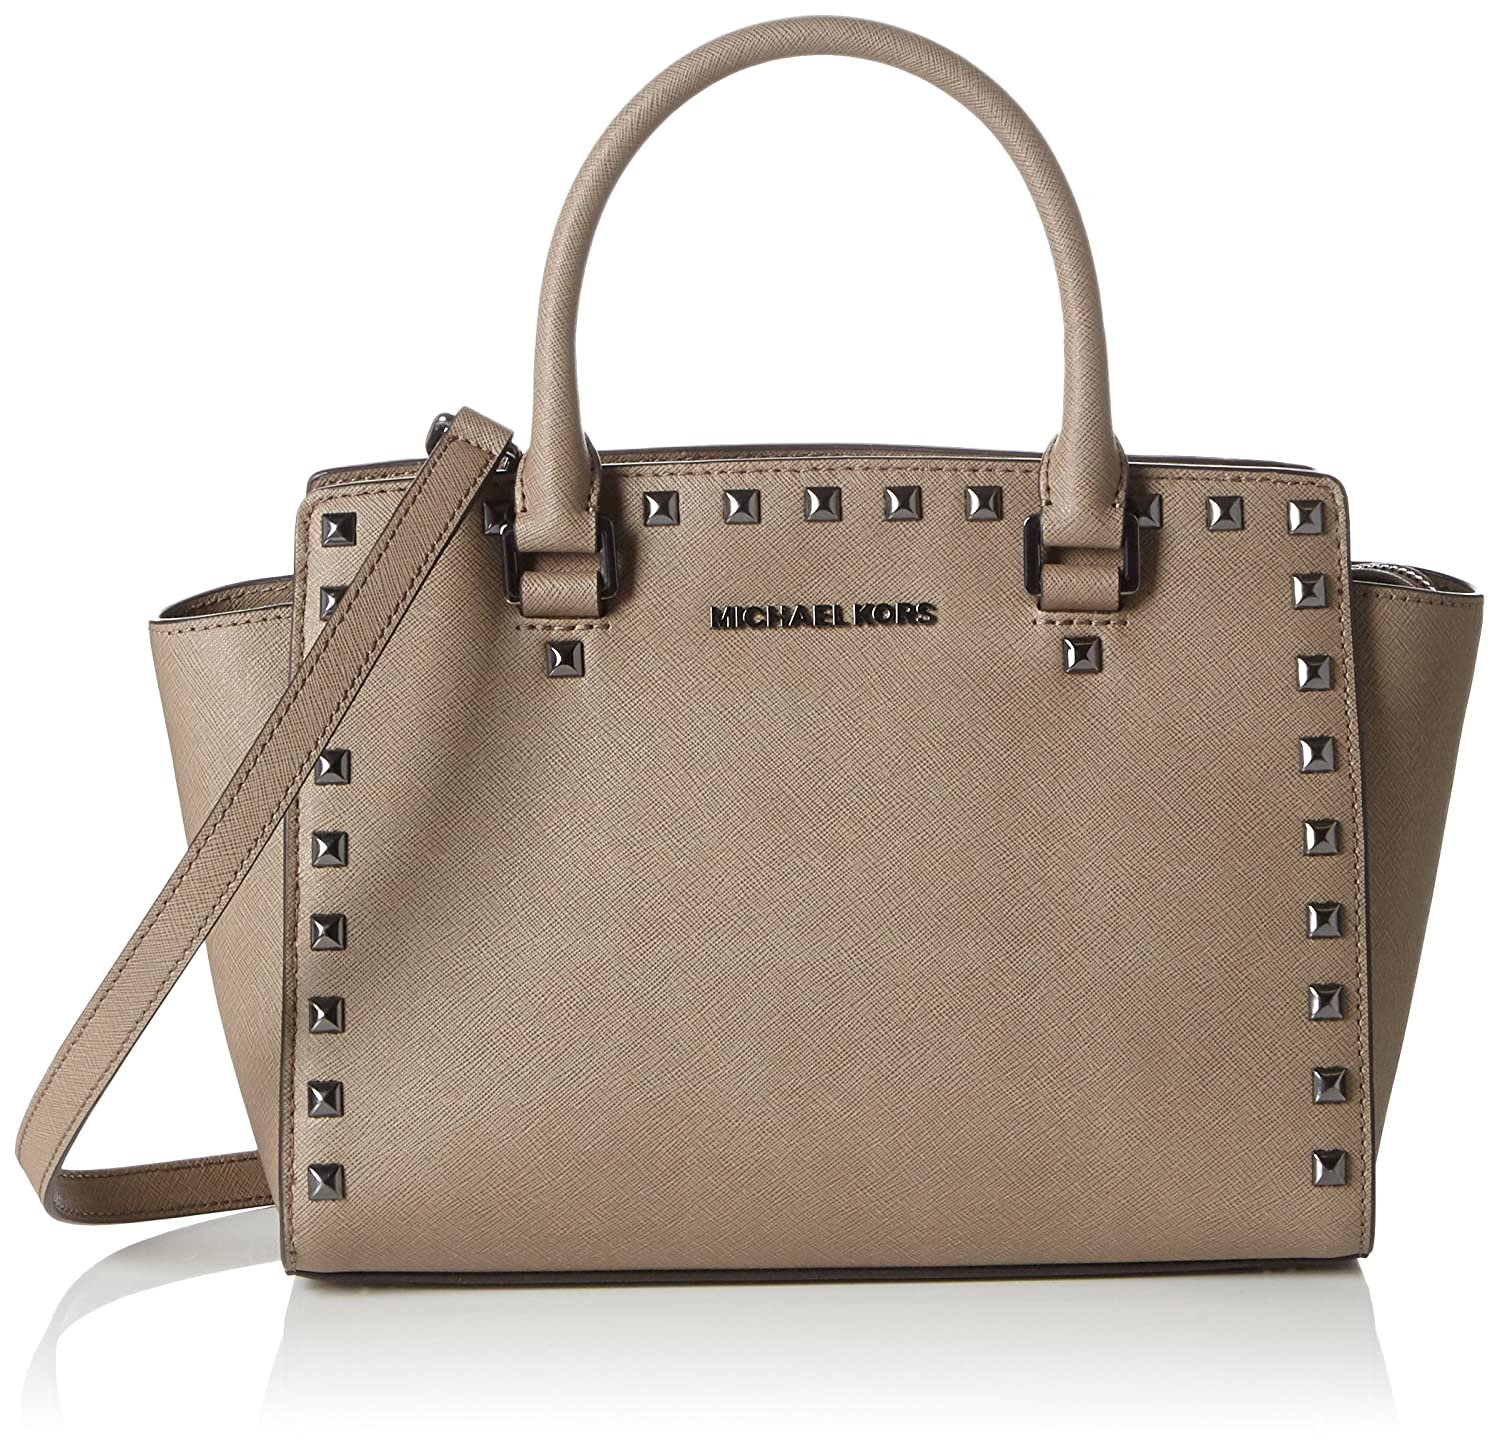 53c9482a61e1bf Michael Kors Women's Selma Medium Studded Saffiano Leather Satchel Satchel  Brown (Dark Dune): Amazon.co.uk: Shoes & Bags